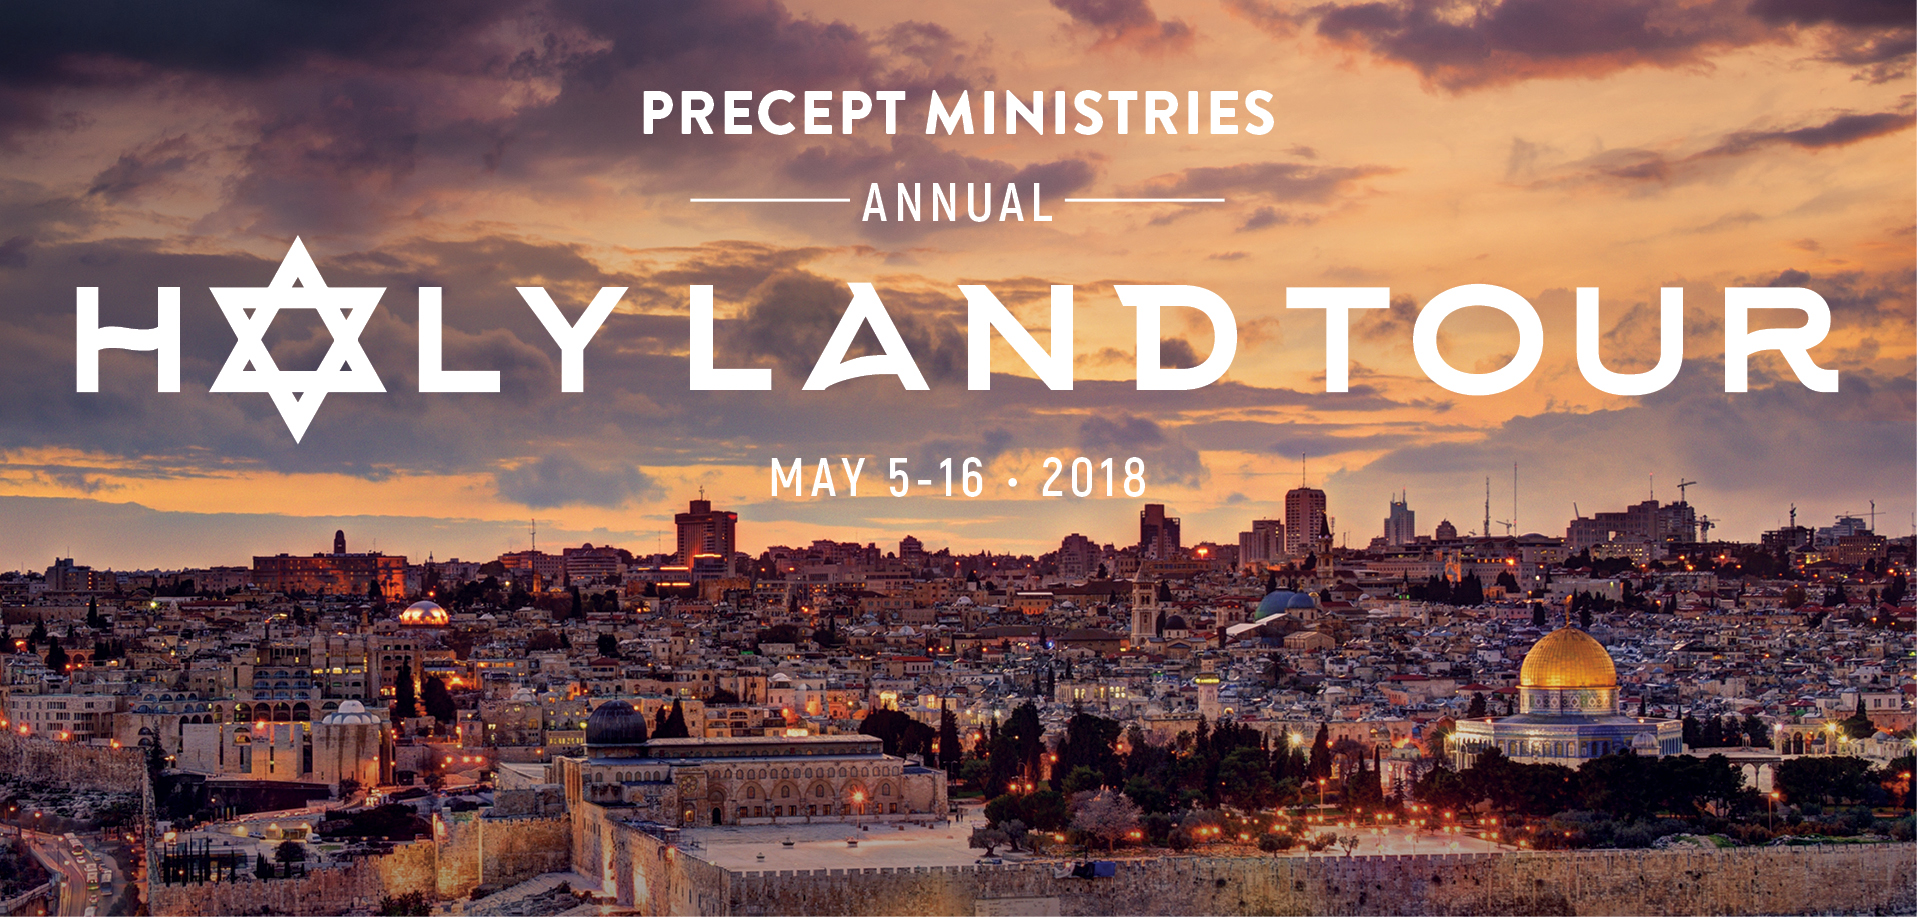 Take a Christian TourWOX with Precept Ministries - Christian Tour to Israel 2018